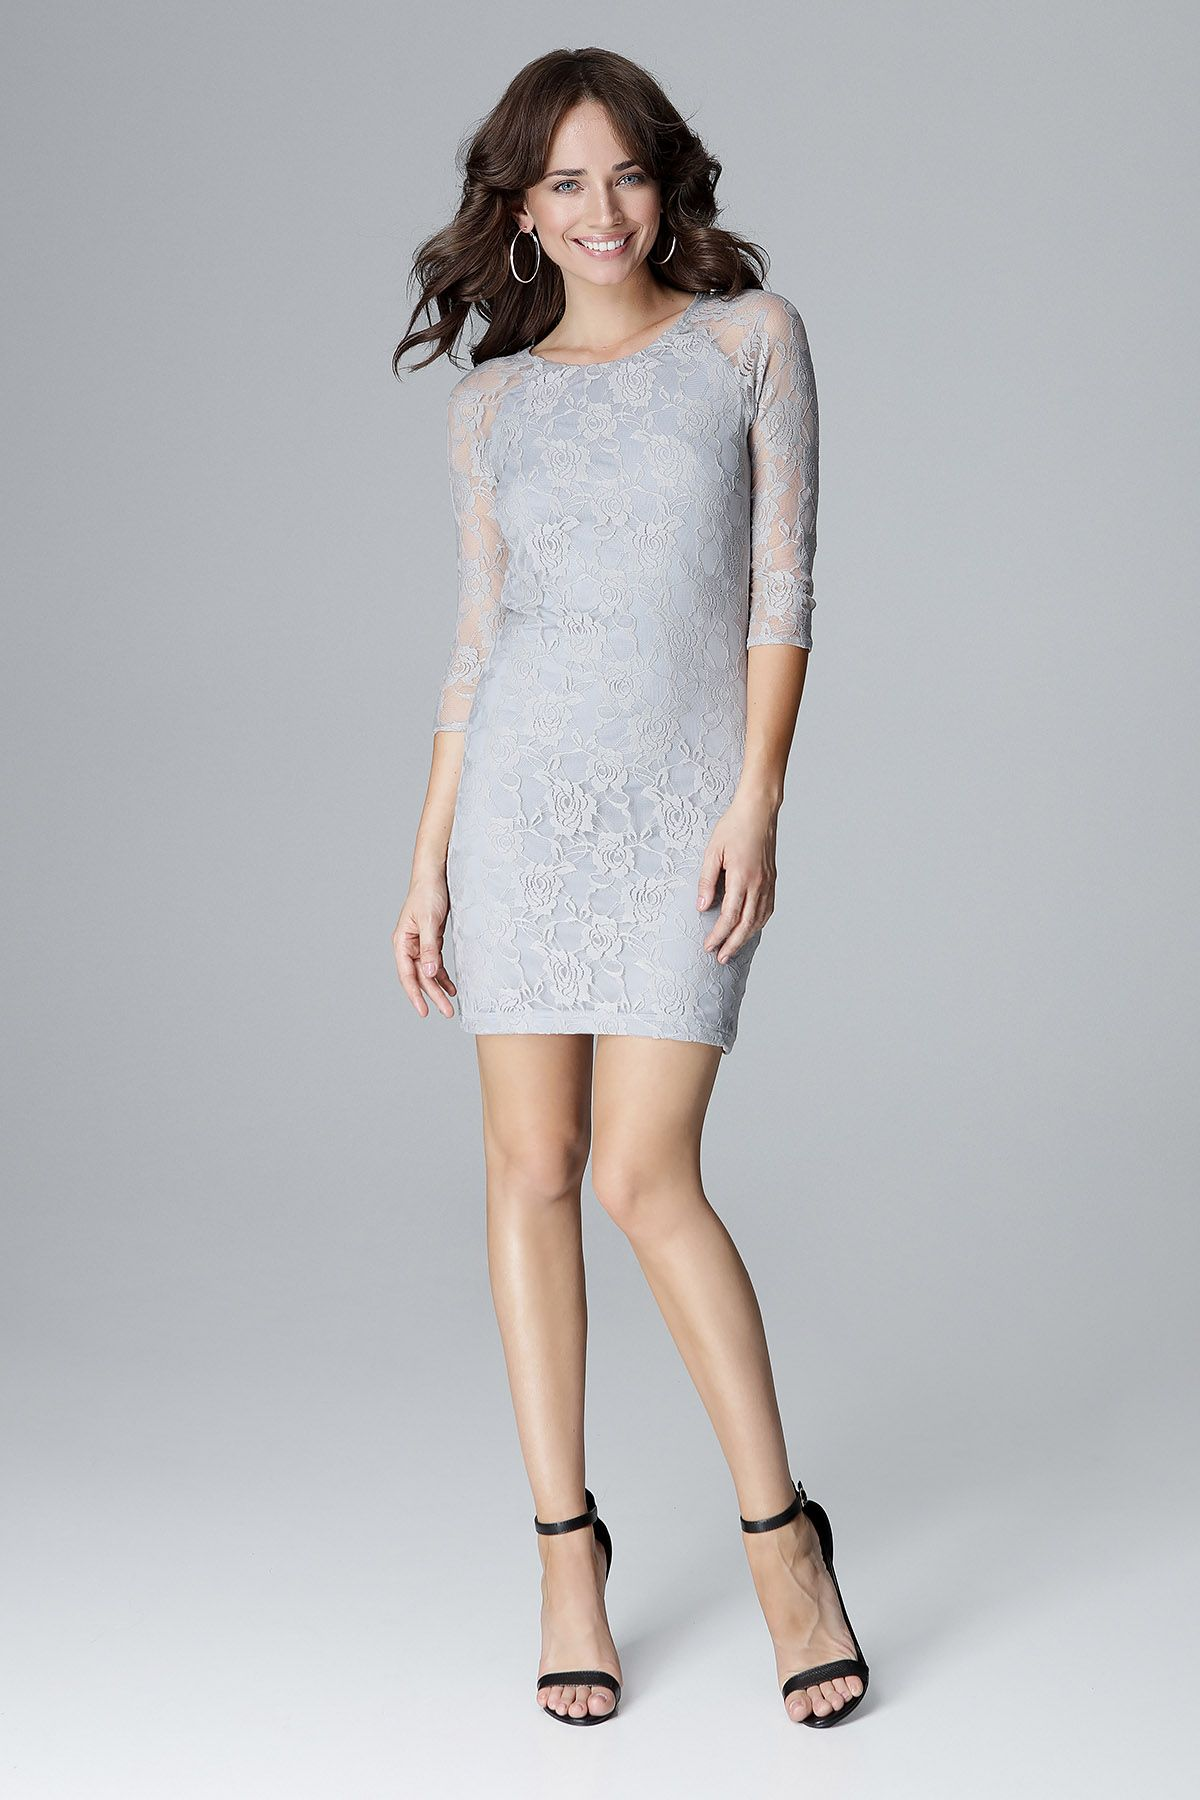 3/4 Long Sleeves Mini Dress With Lace